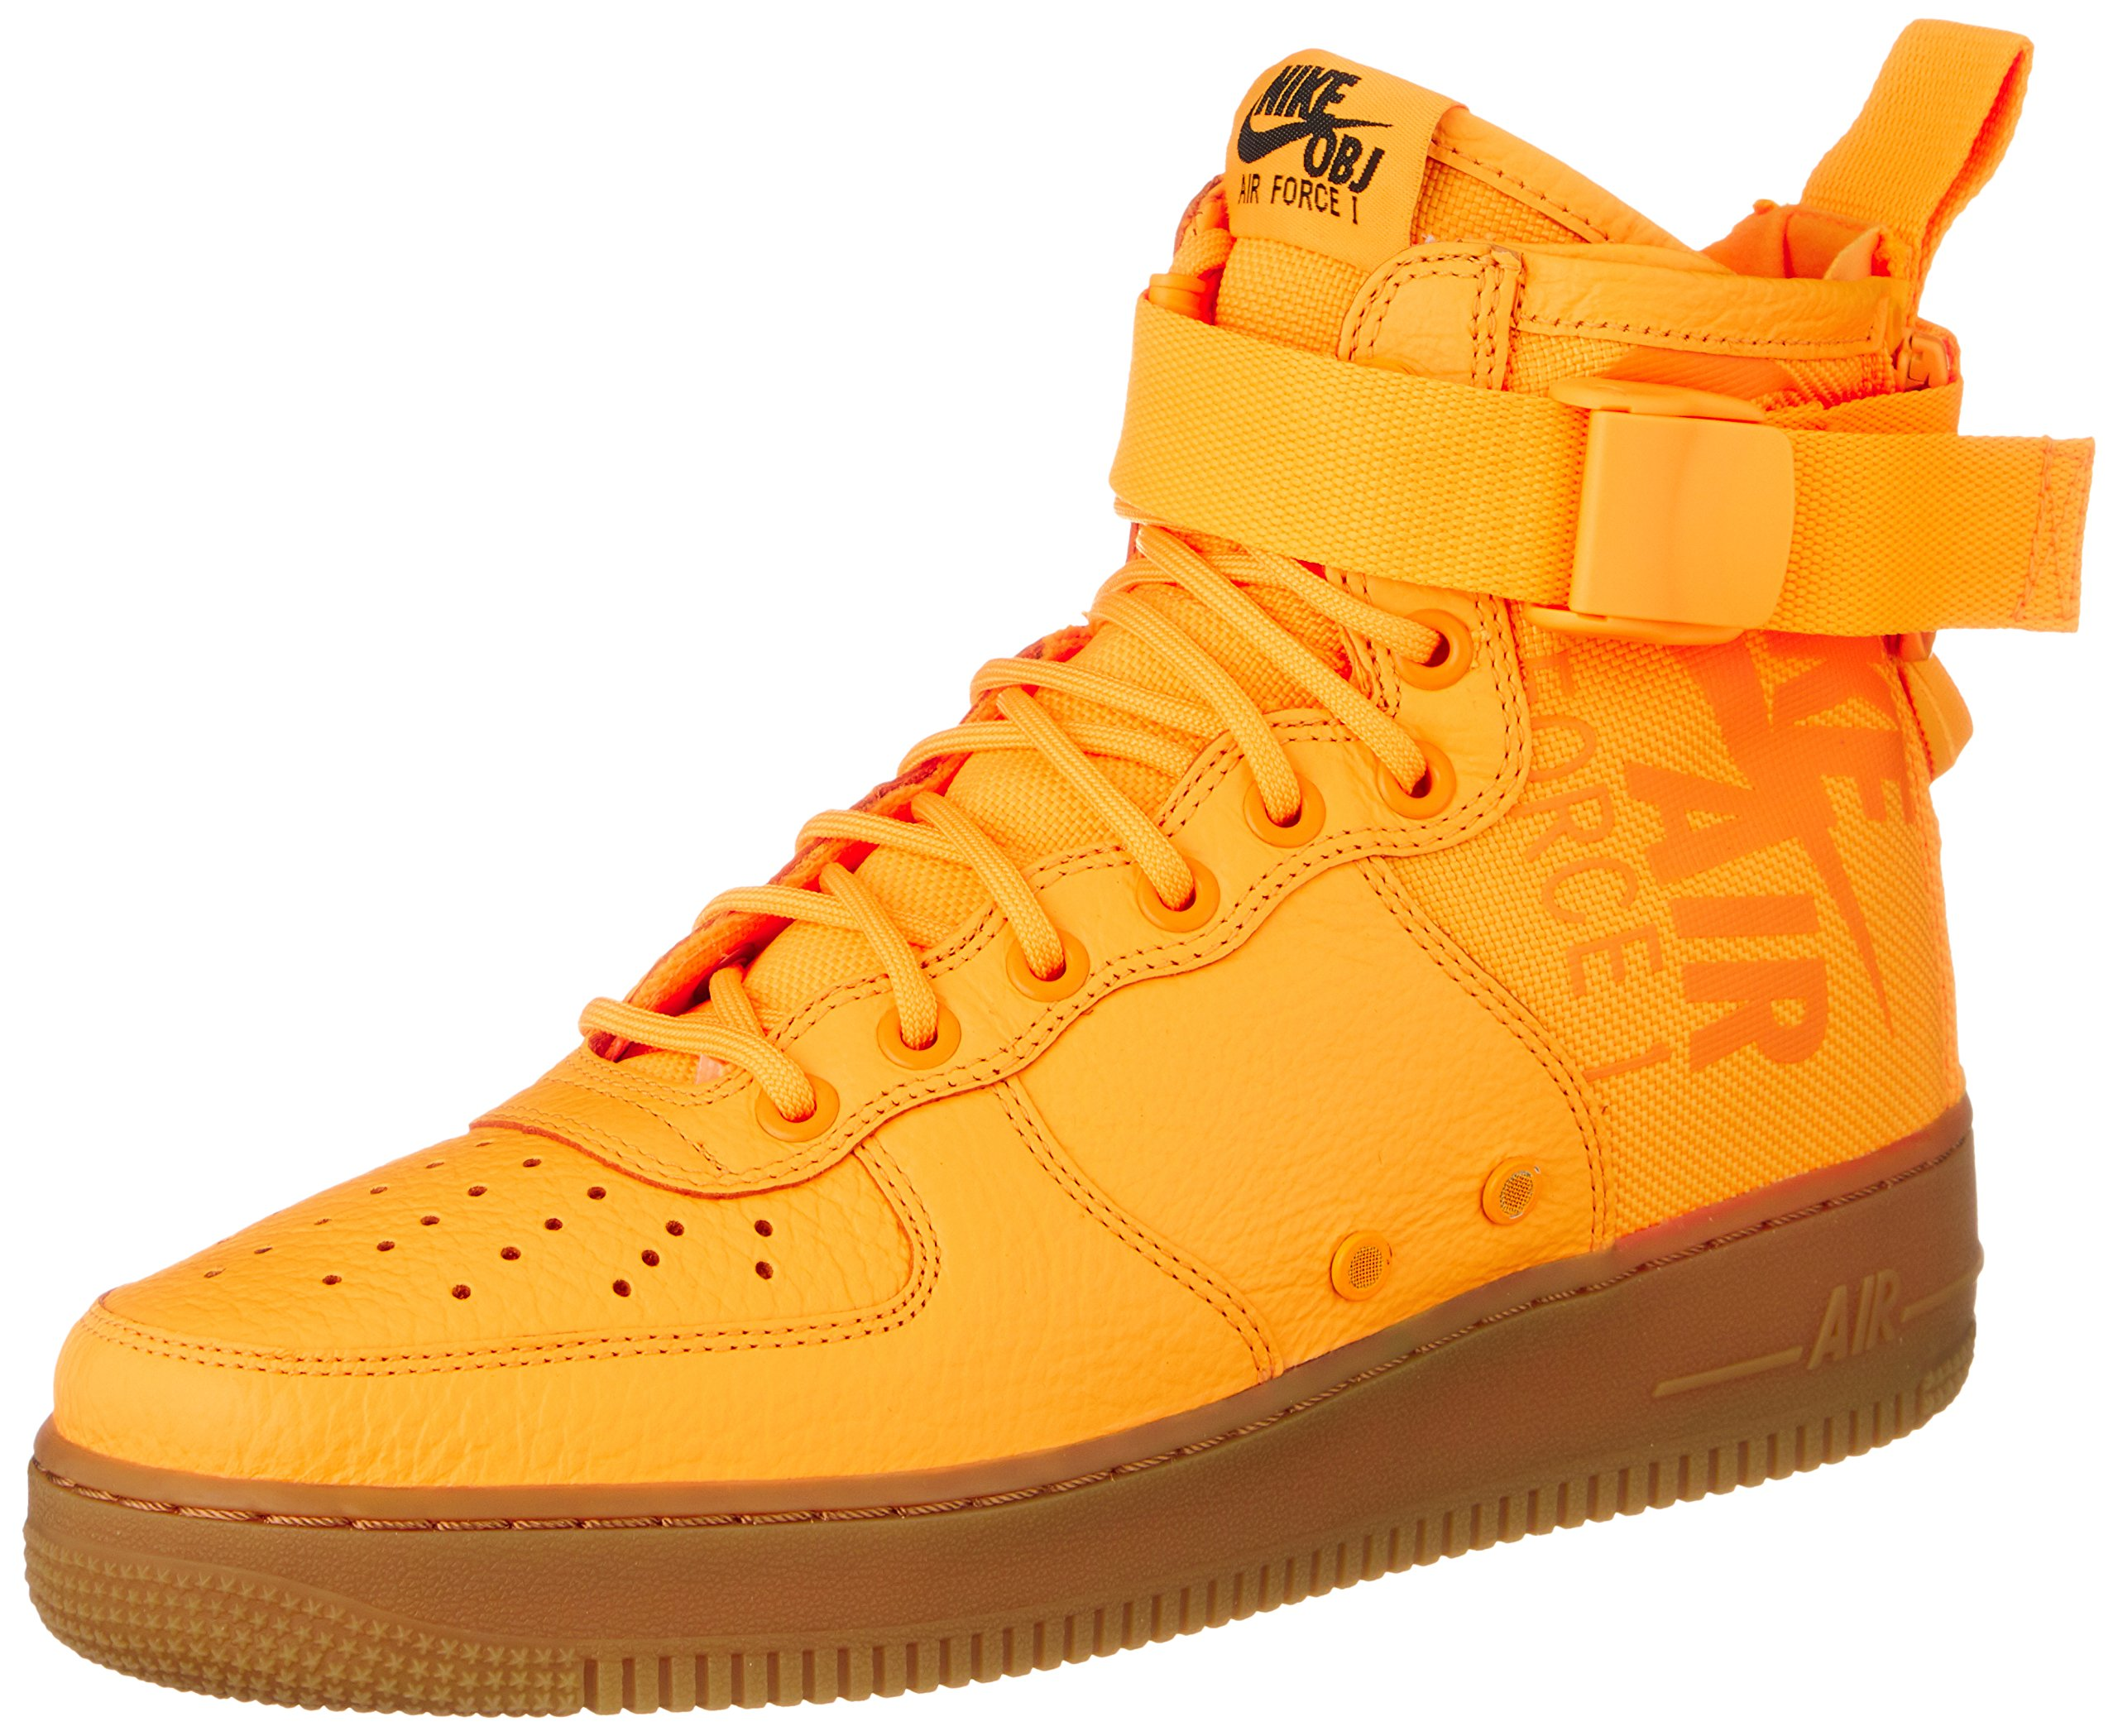 cheap for discount f17cc 7c2b8 Nike SF AF1 MID 917753 801 Laser Orange OBJ Odell Beckham Men's Shoes (11)